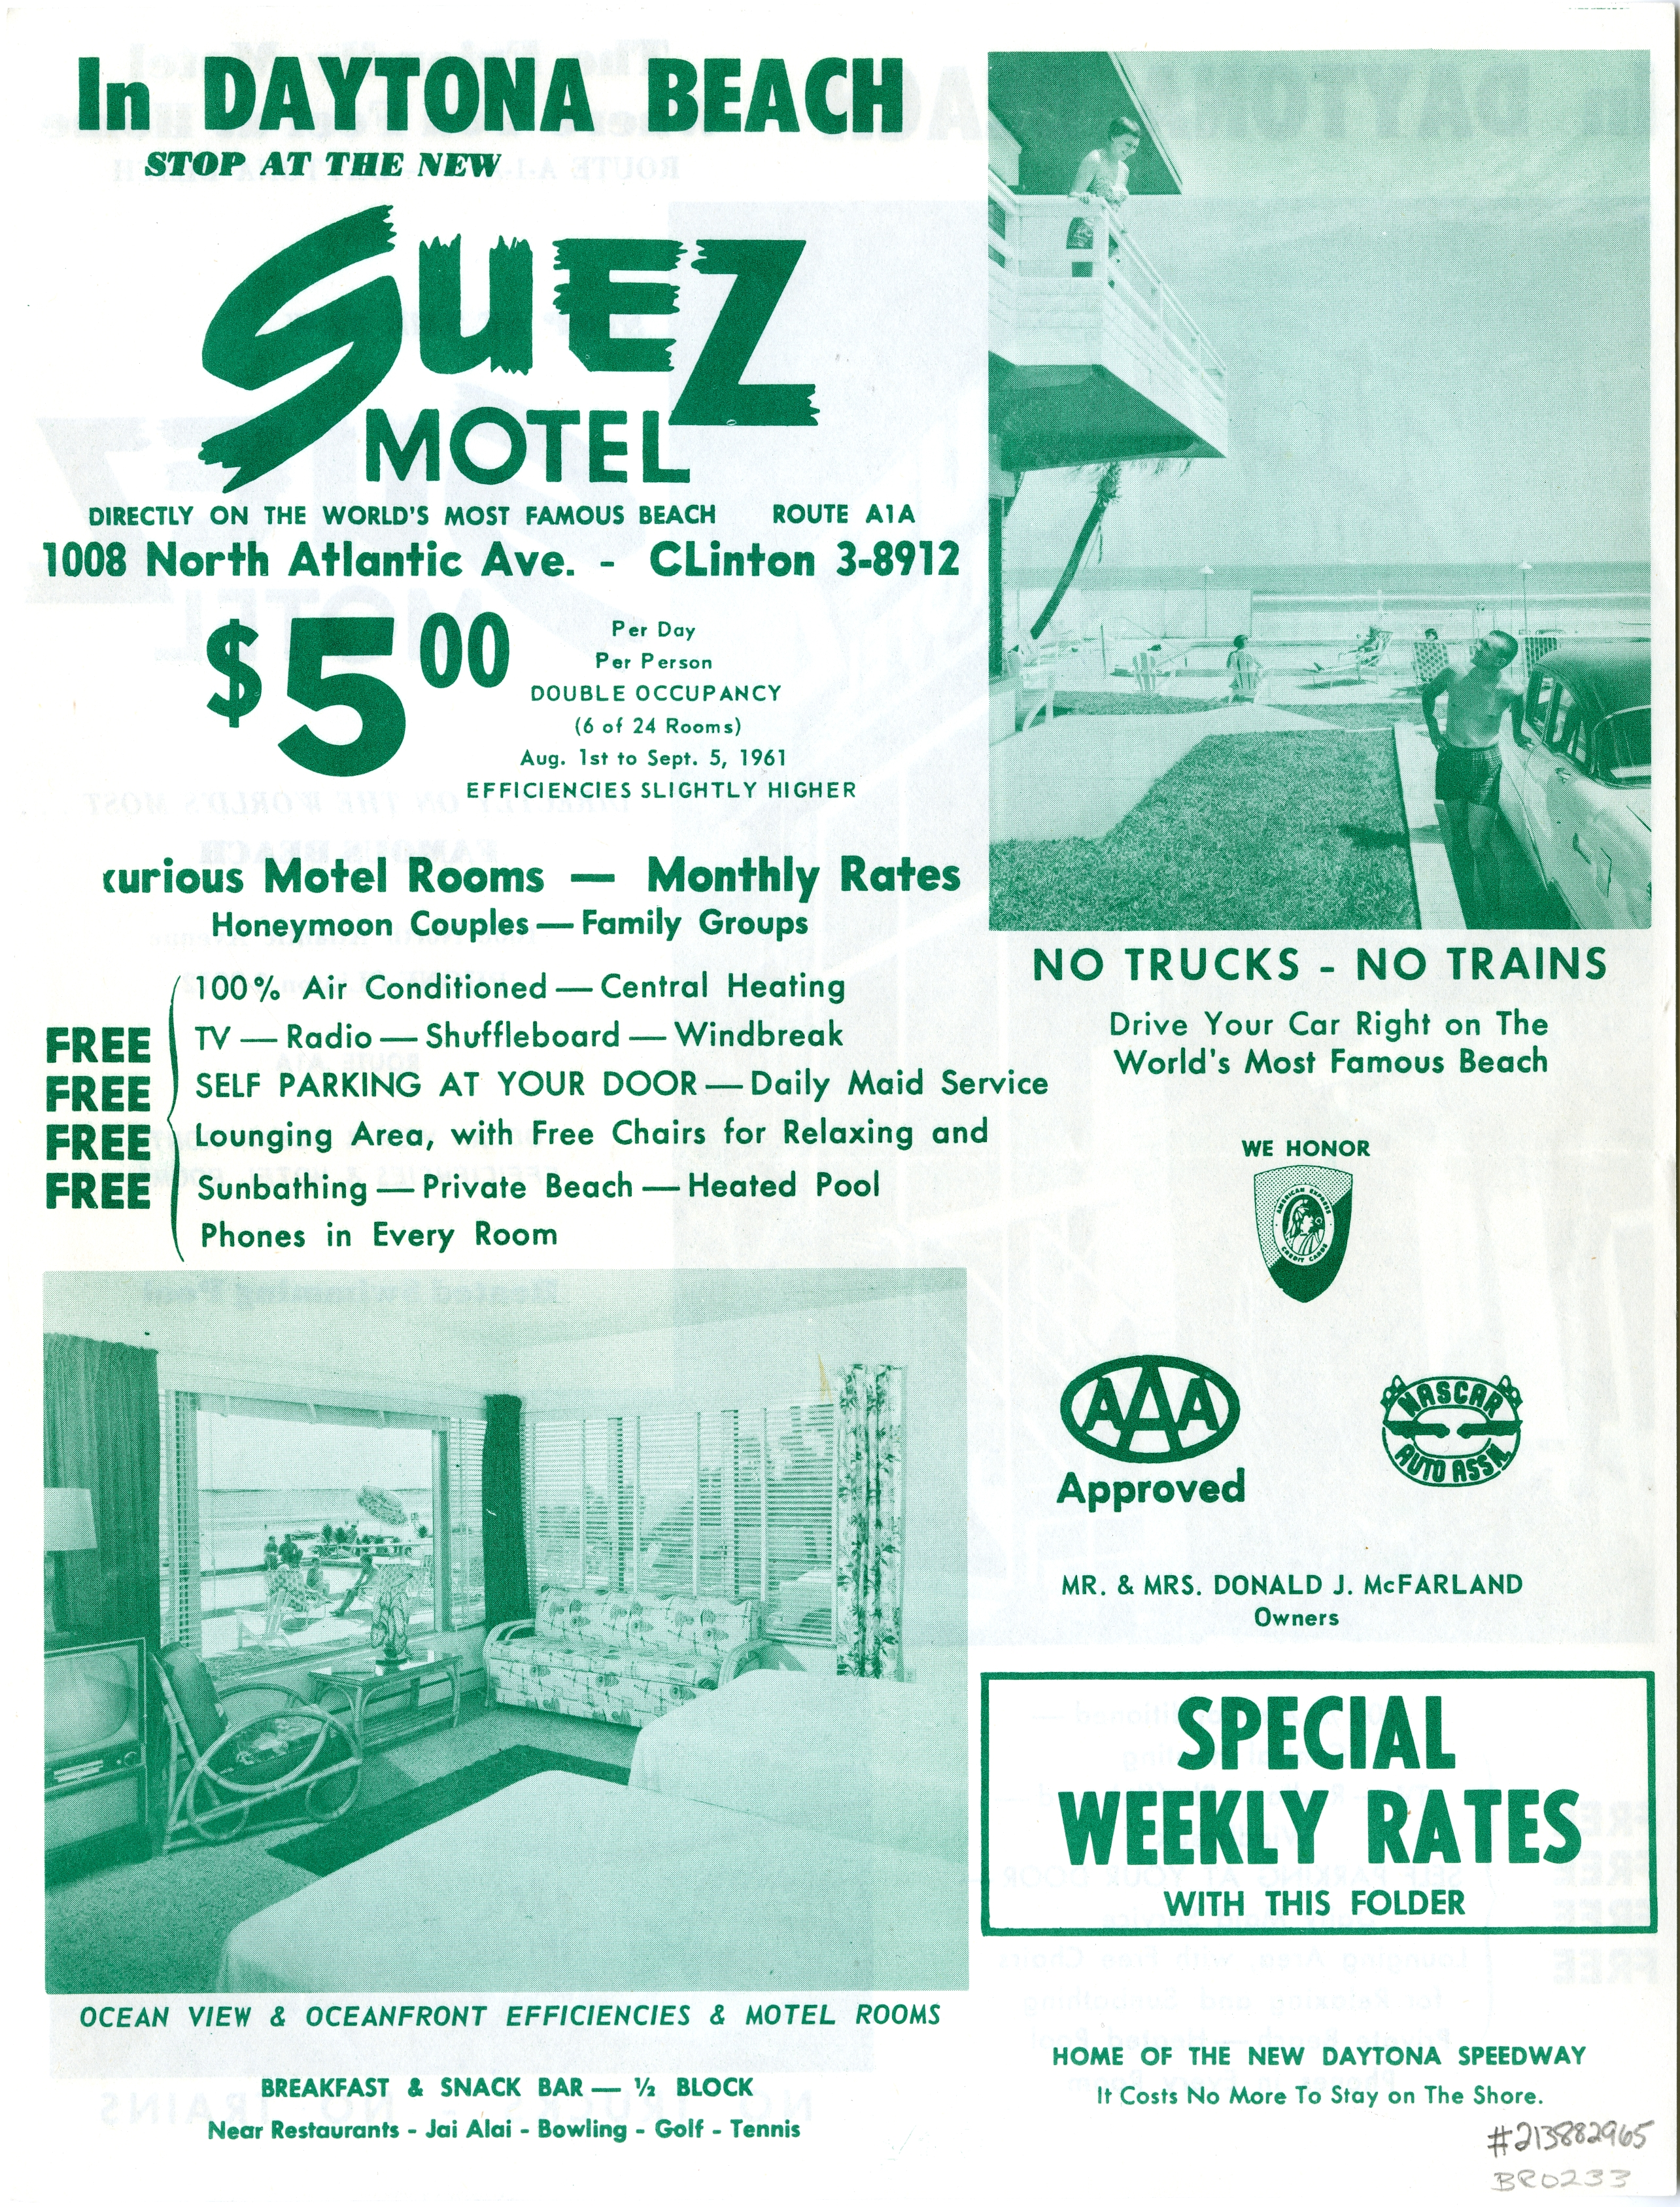 Suez Motel, Daytona Beach, Florida.